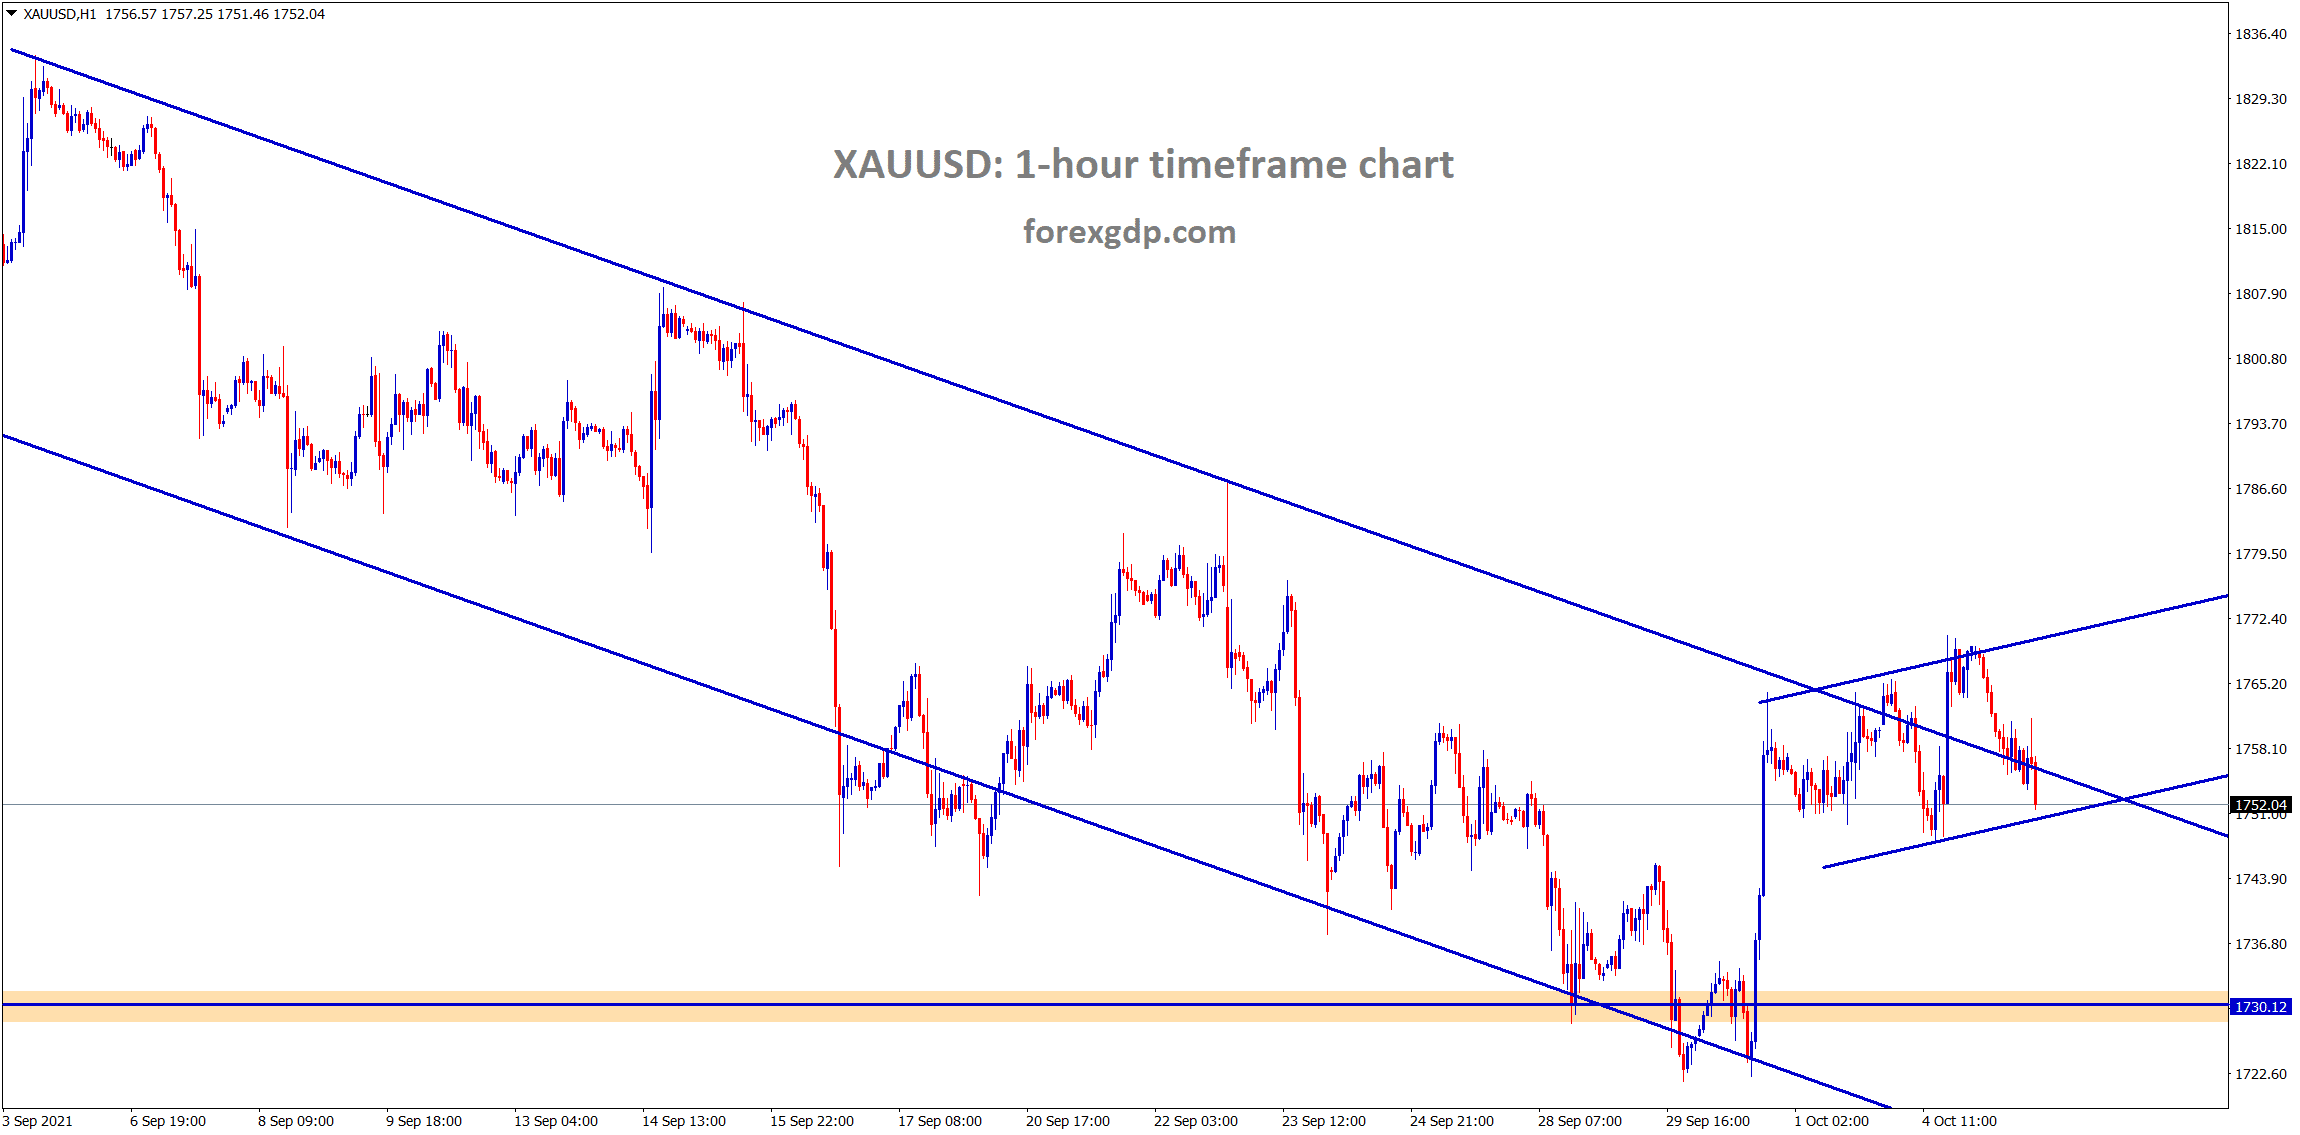 Gold is consolidating at the lower high area of the descending channel range wait for the breakout